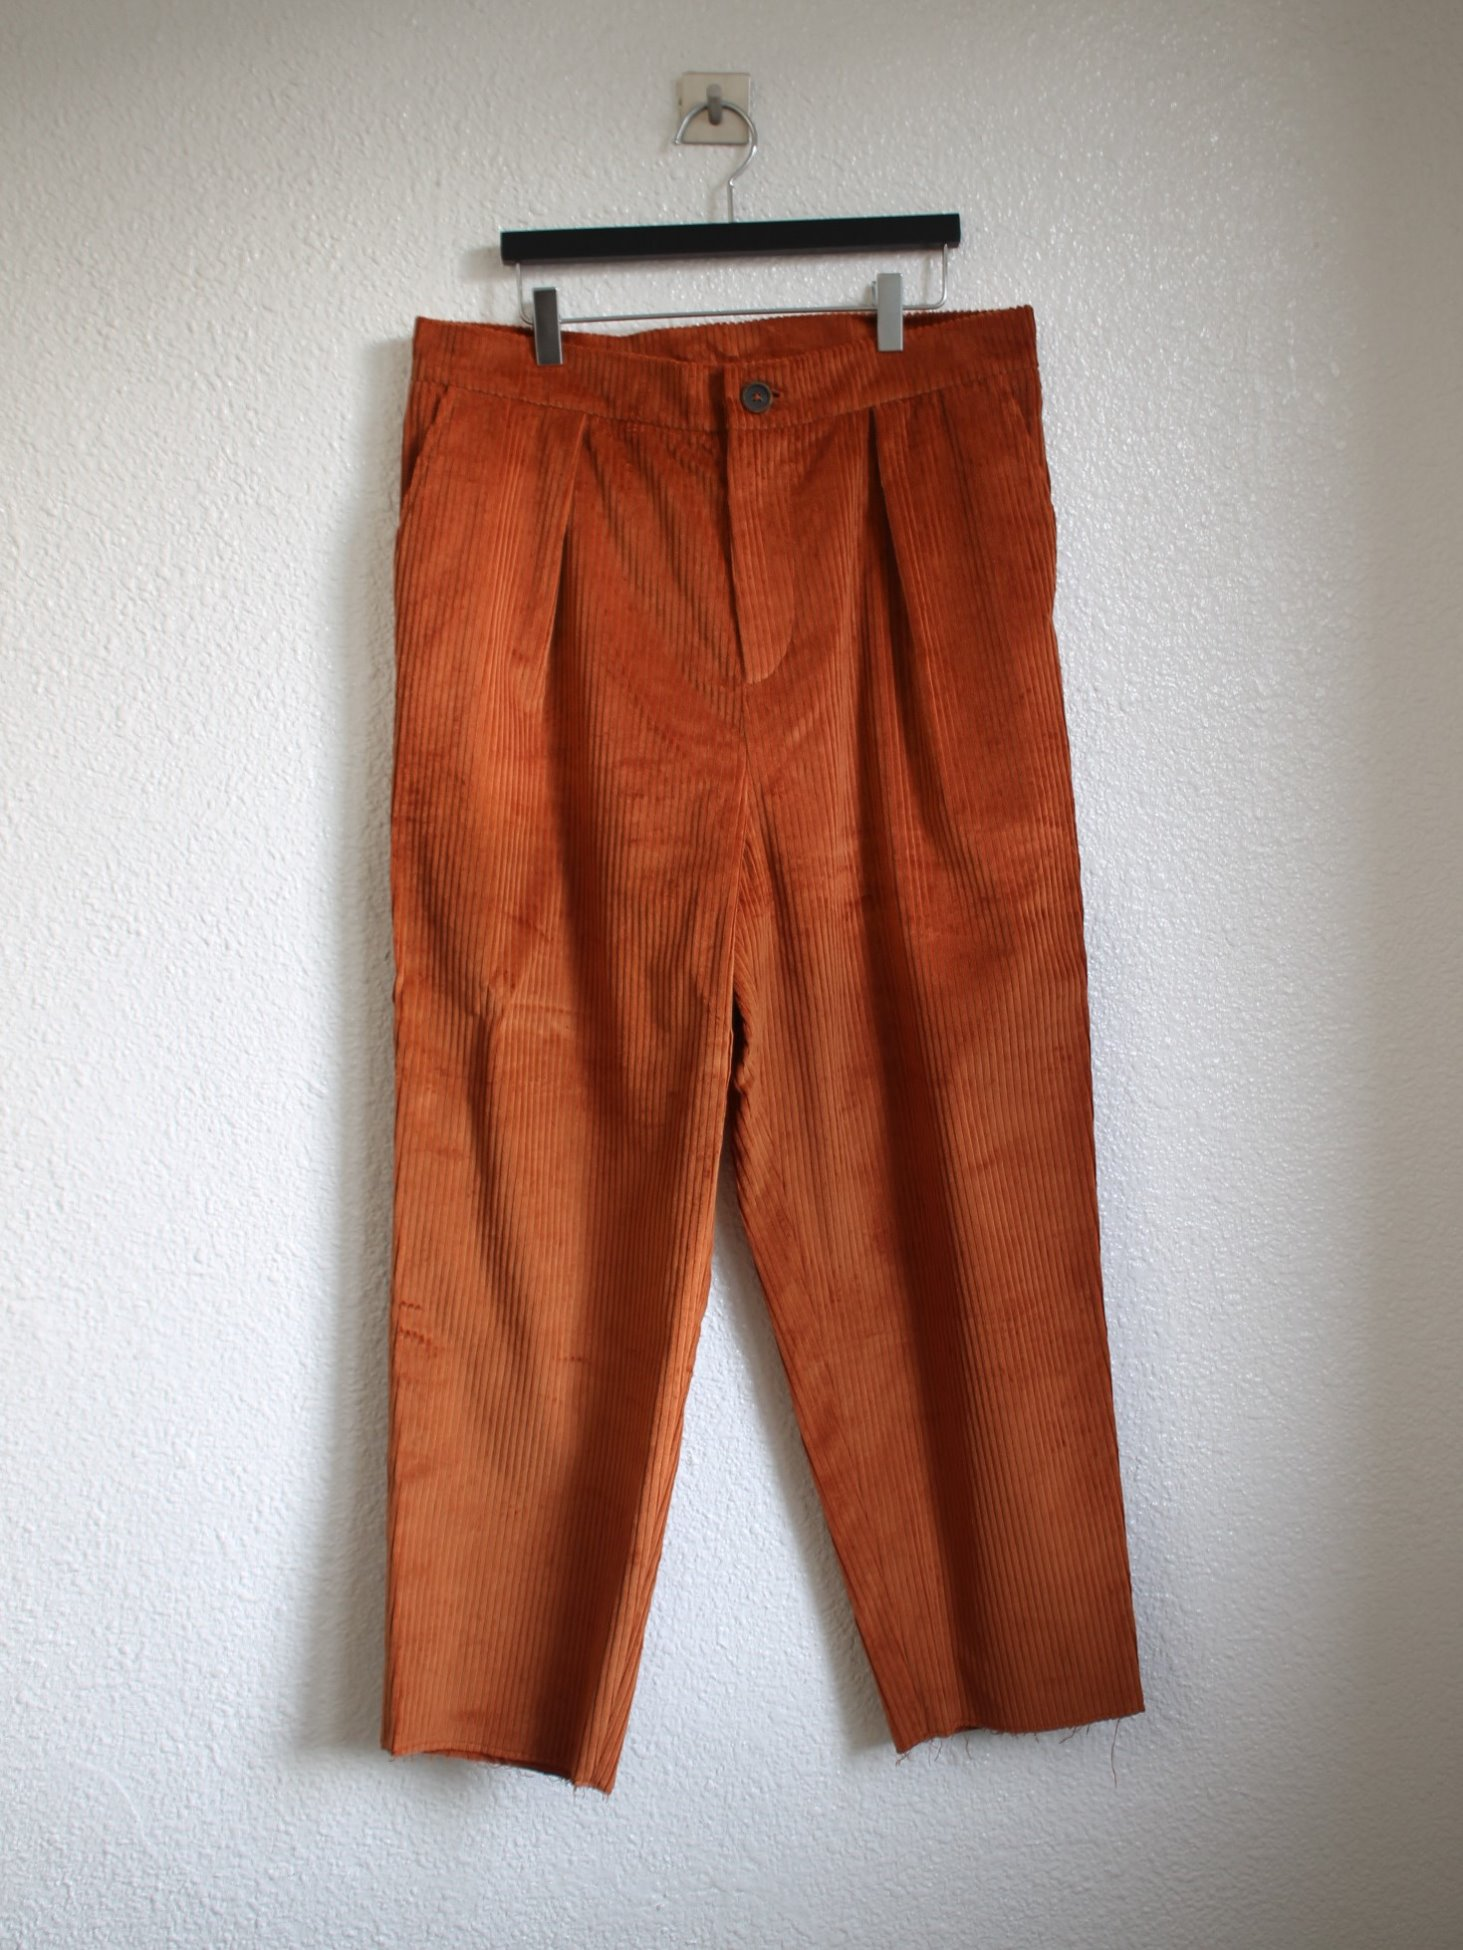 [An Irrational Element] Capa Trouser - Rust Corduroy